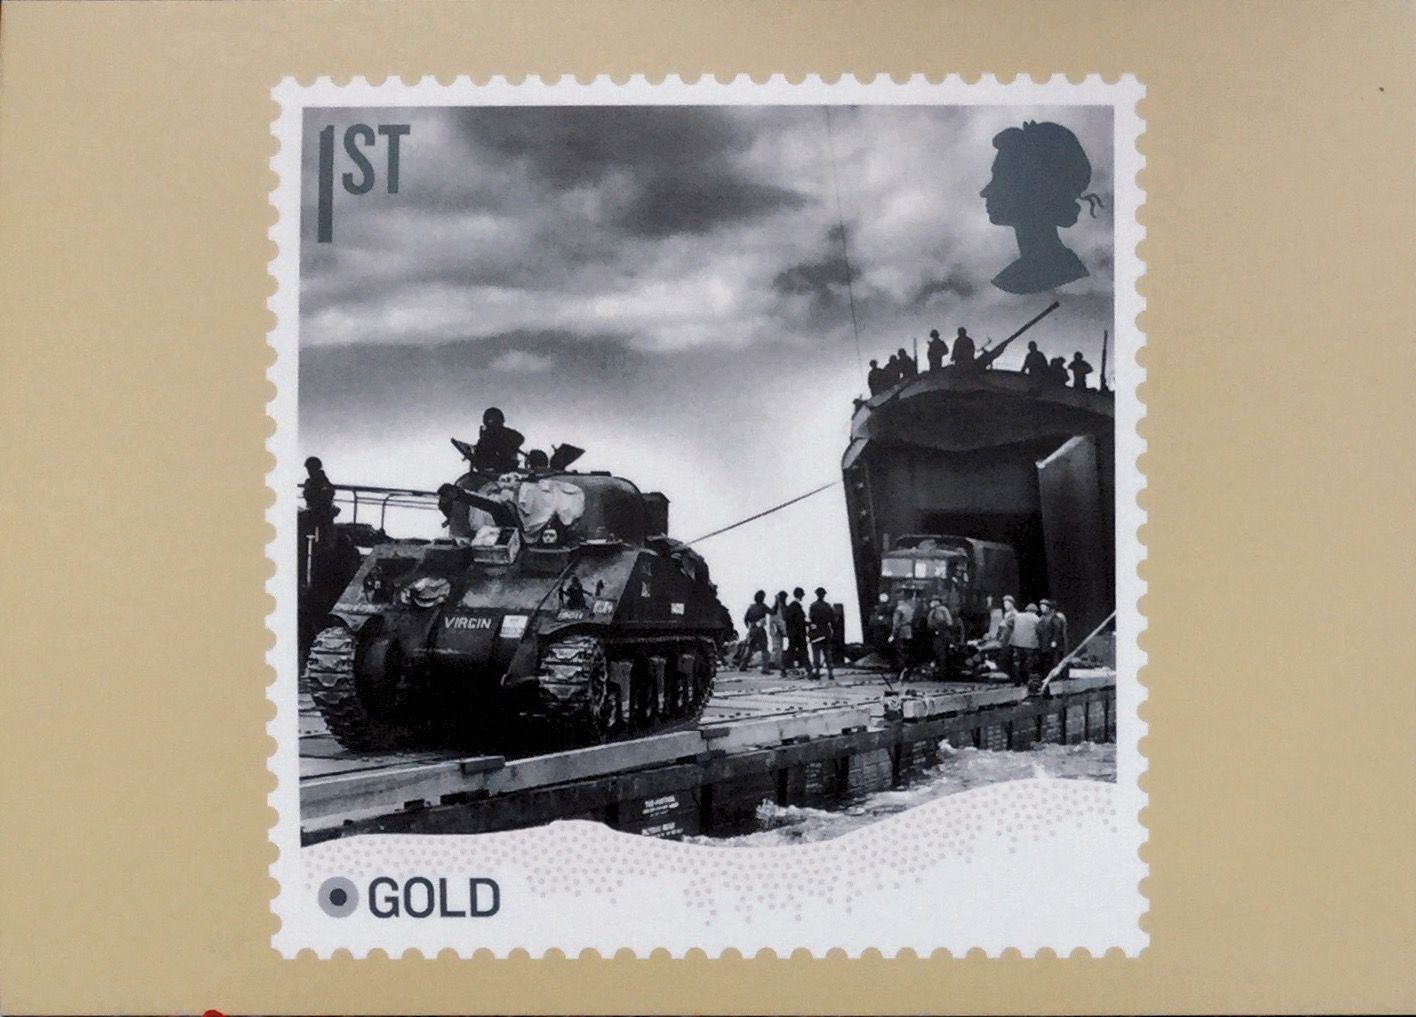 Issue number 458(9). Issued 6 June 2019. 75th anniversary